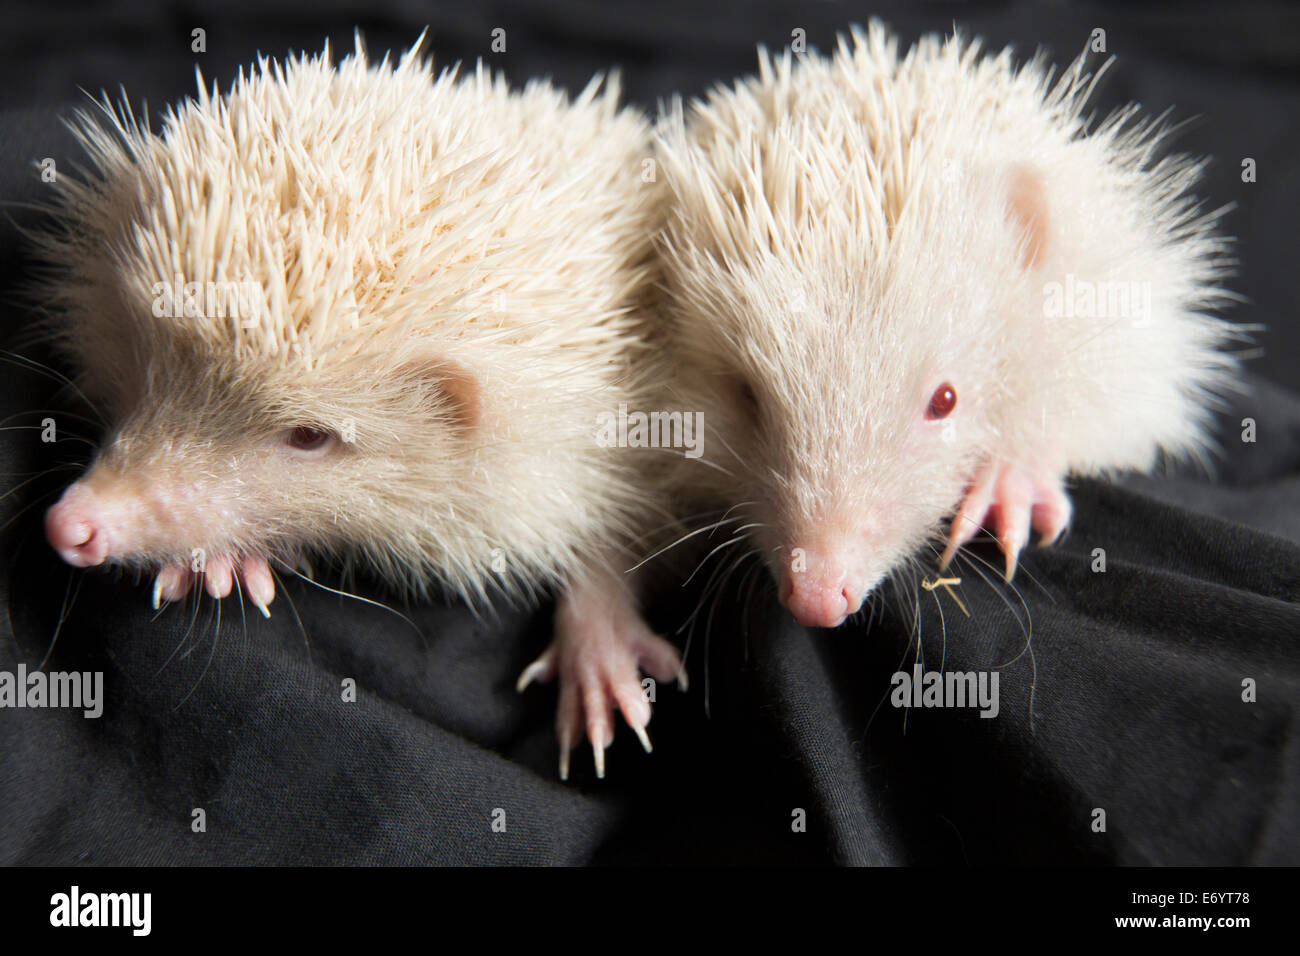 Brother and sister, 'Yang and Johney' are unusual being orphaned Albino hedgehogs. - Stock Image